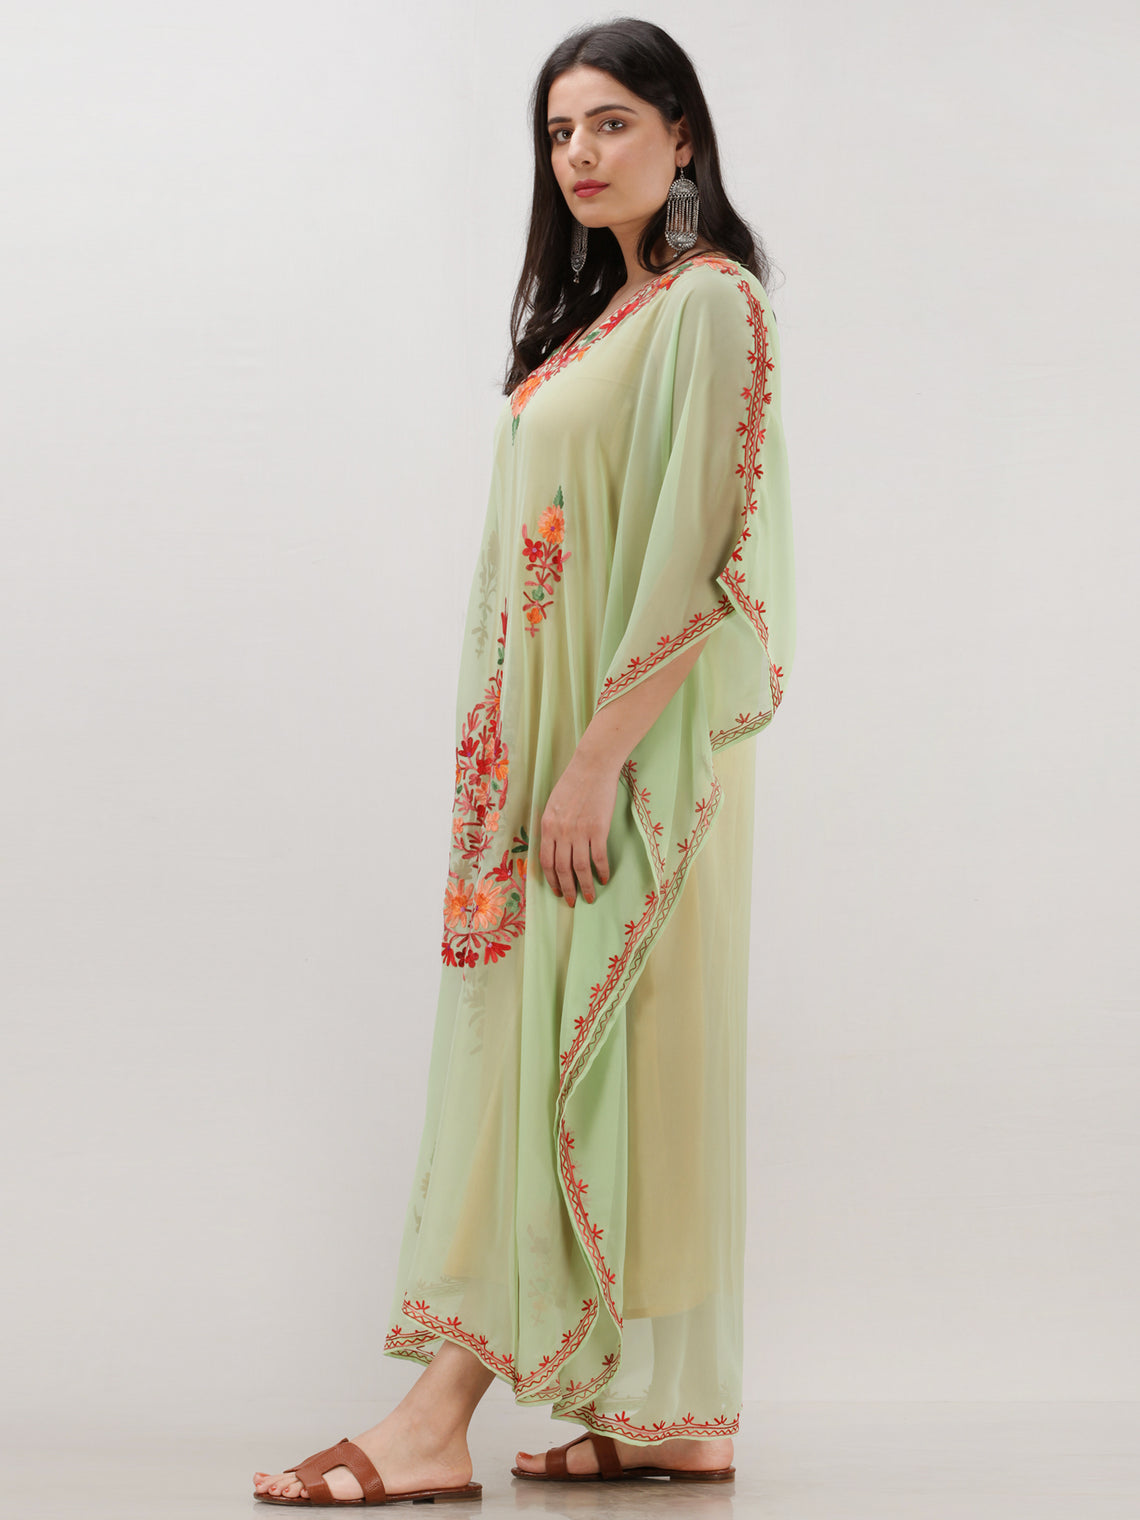 Light Green Multicolor Aari Embroidered Kashmere Free Size Georgette Kaftan  - K12K011